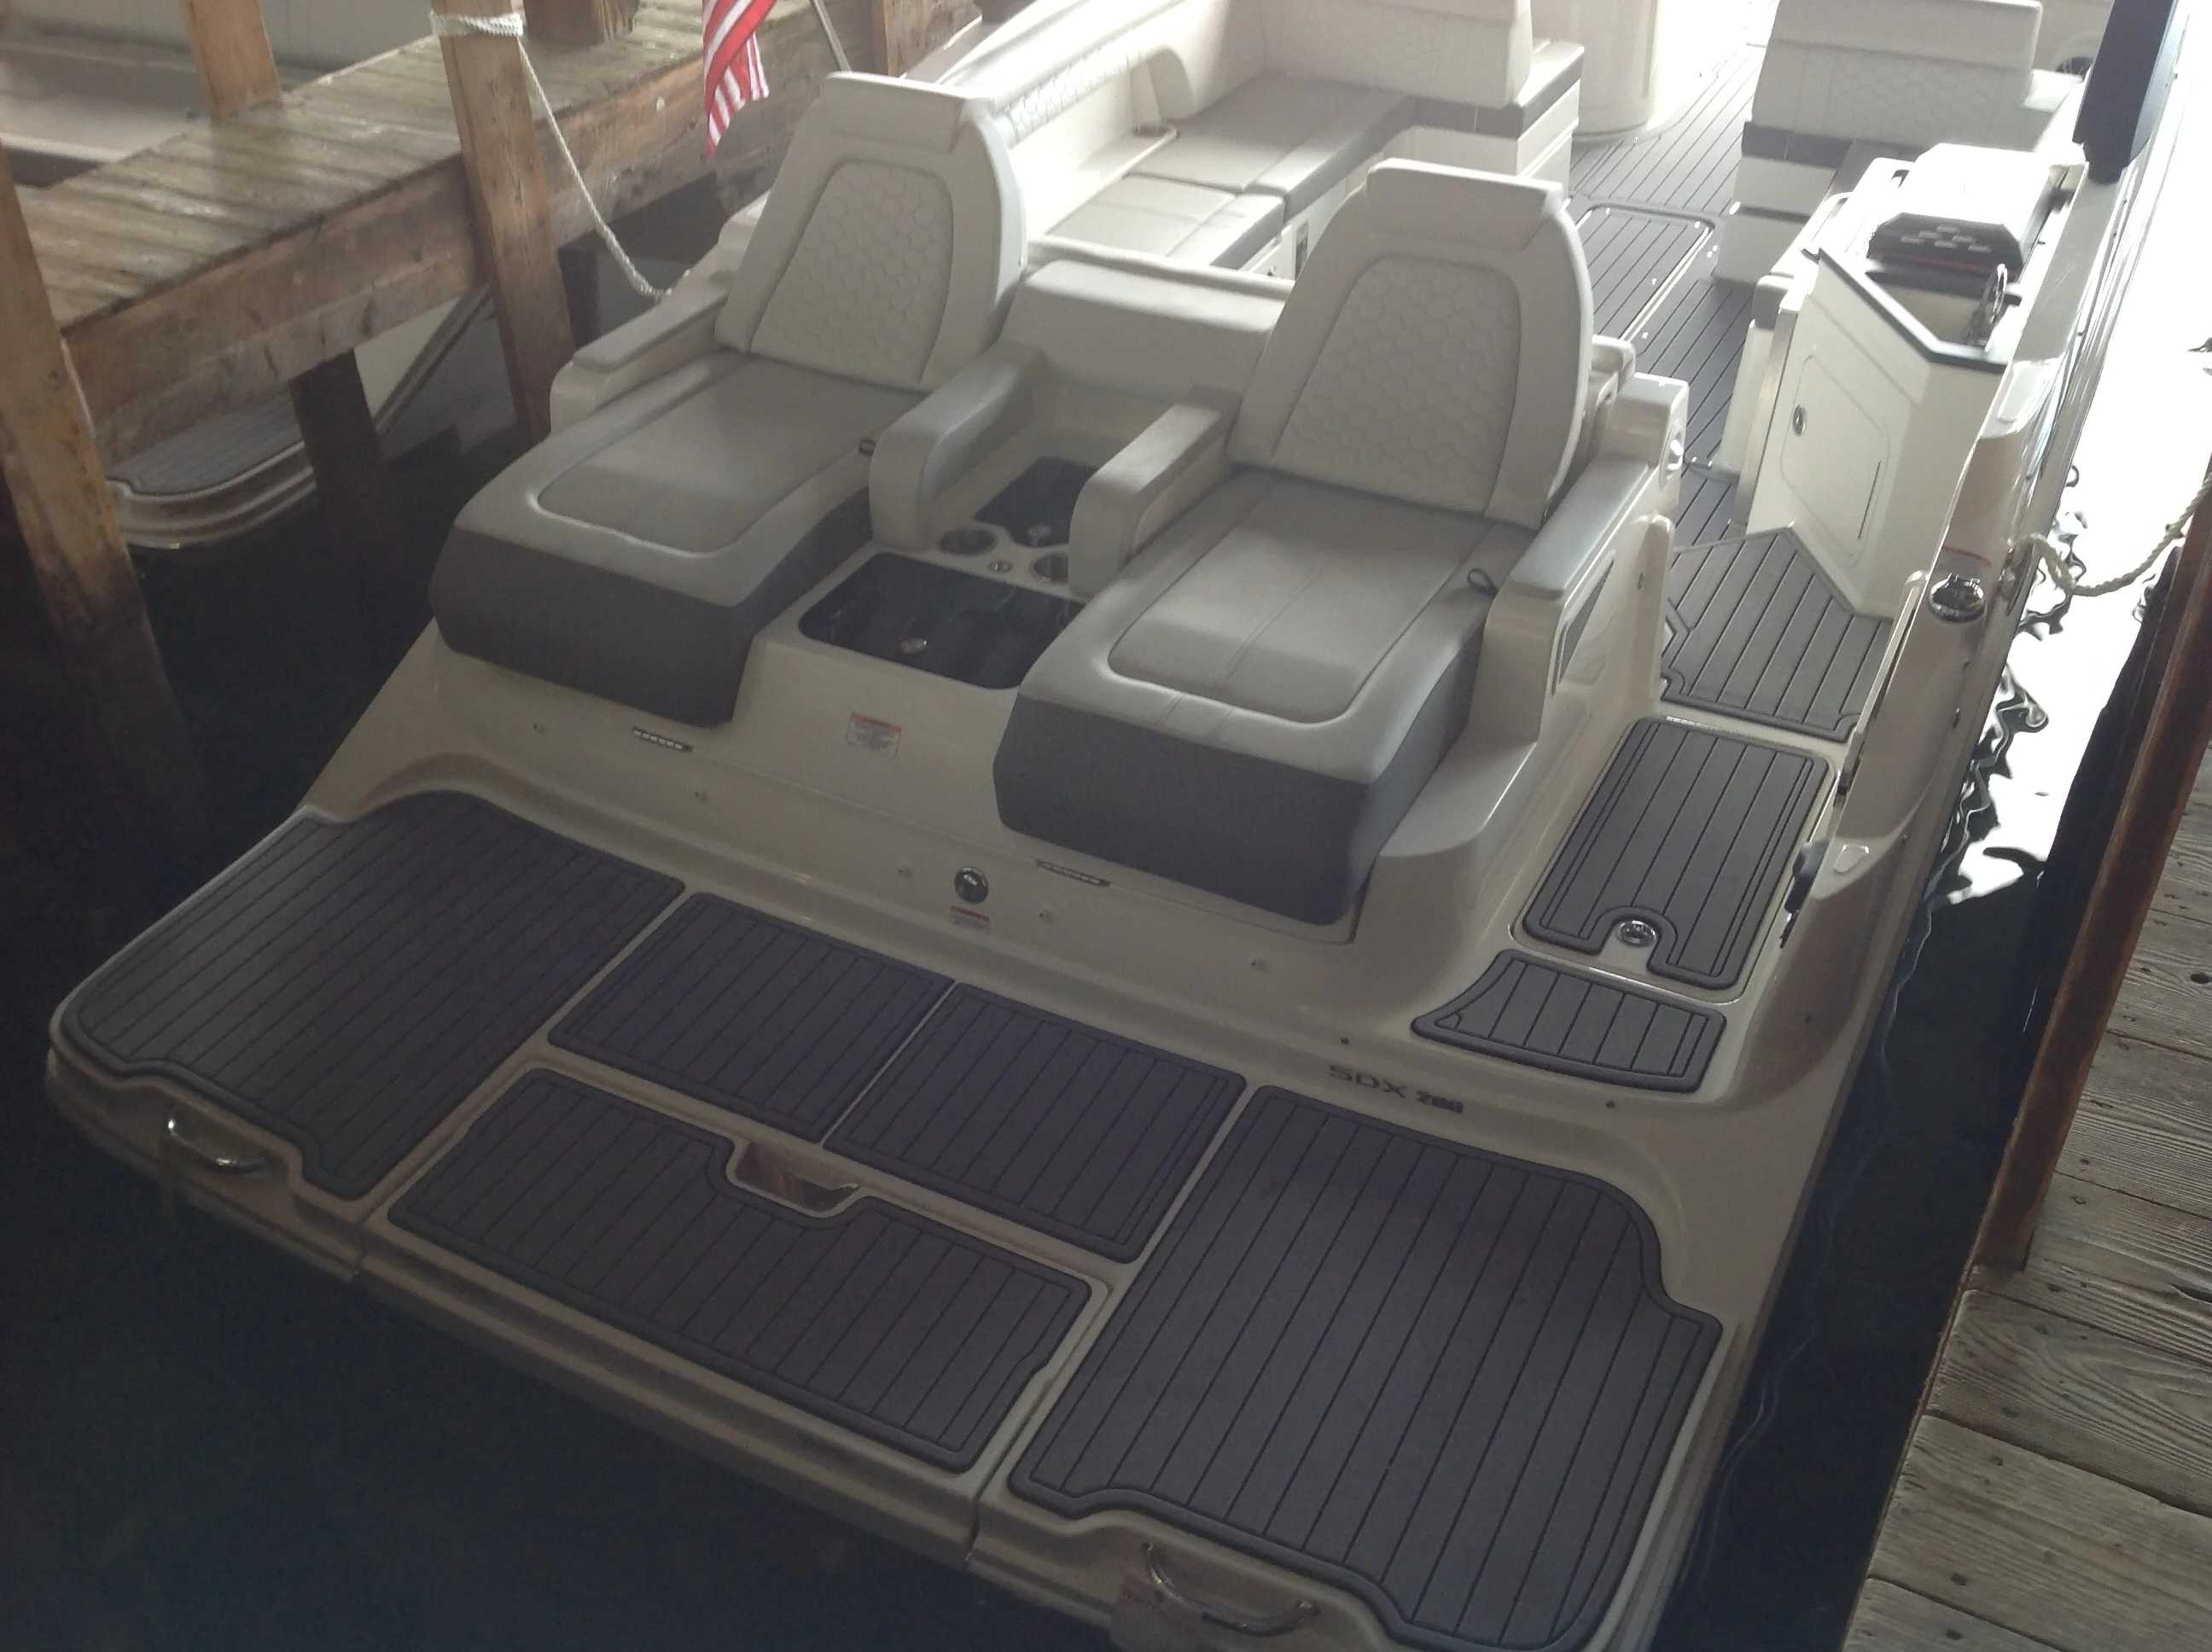 2021 Sea Ray boat for sale, model of the boat is 290 sdx & Image # 12 of 12